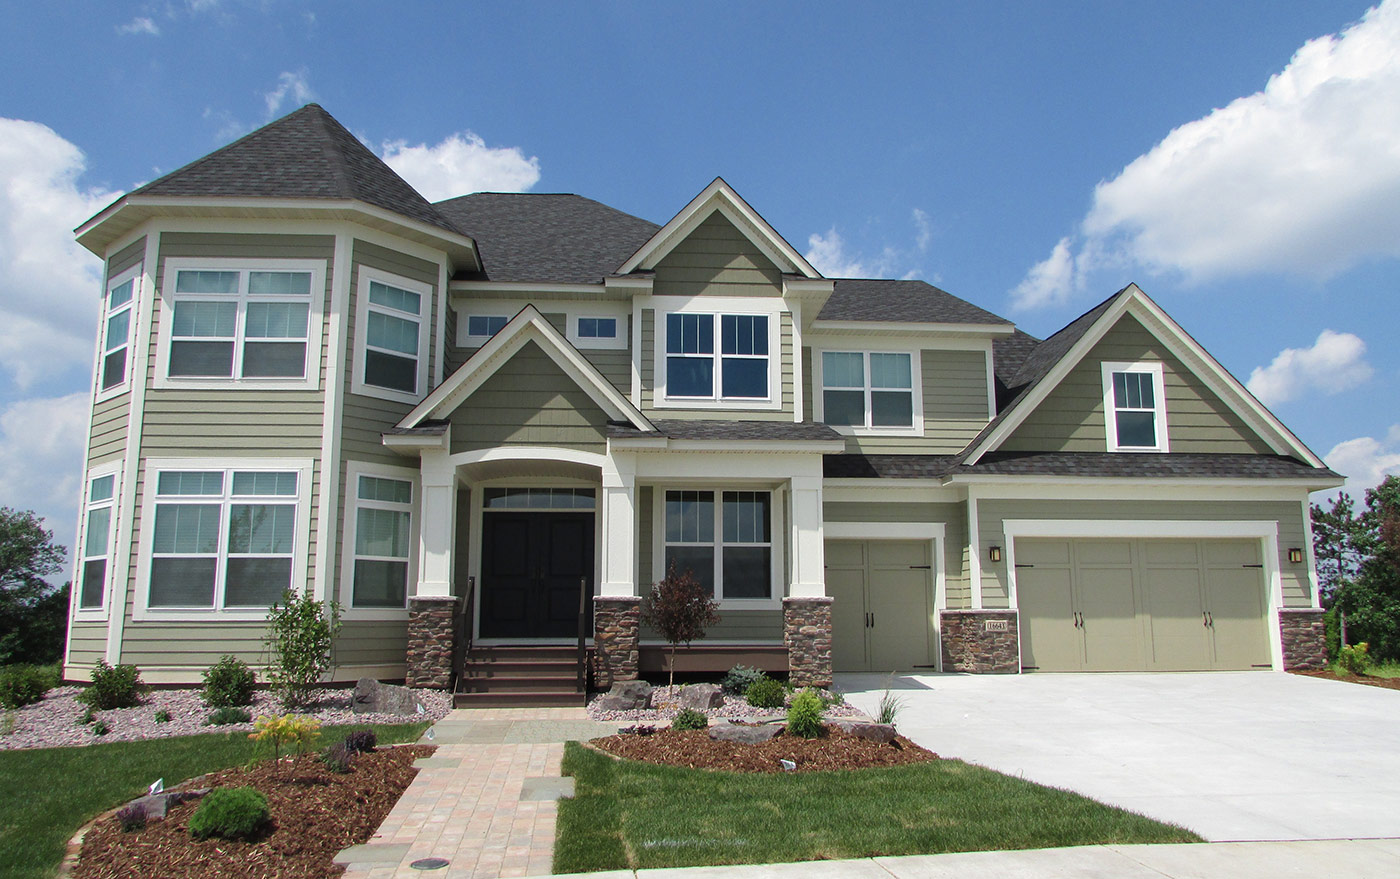 Custom home exteriors custom home builders new home for Home builder contractors